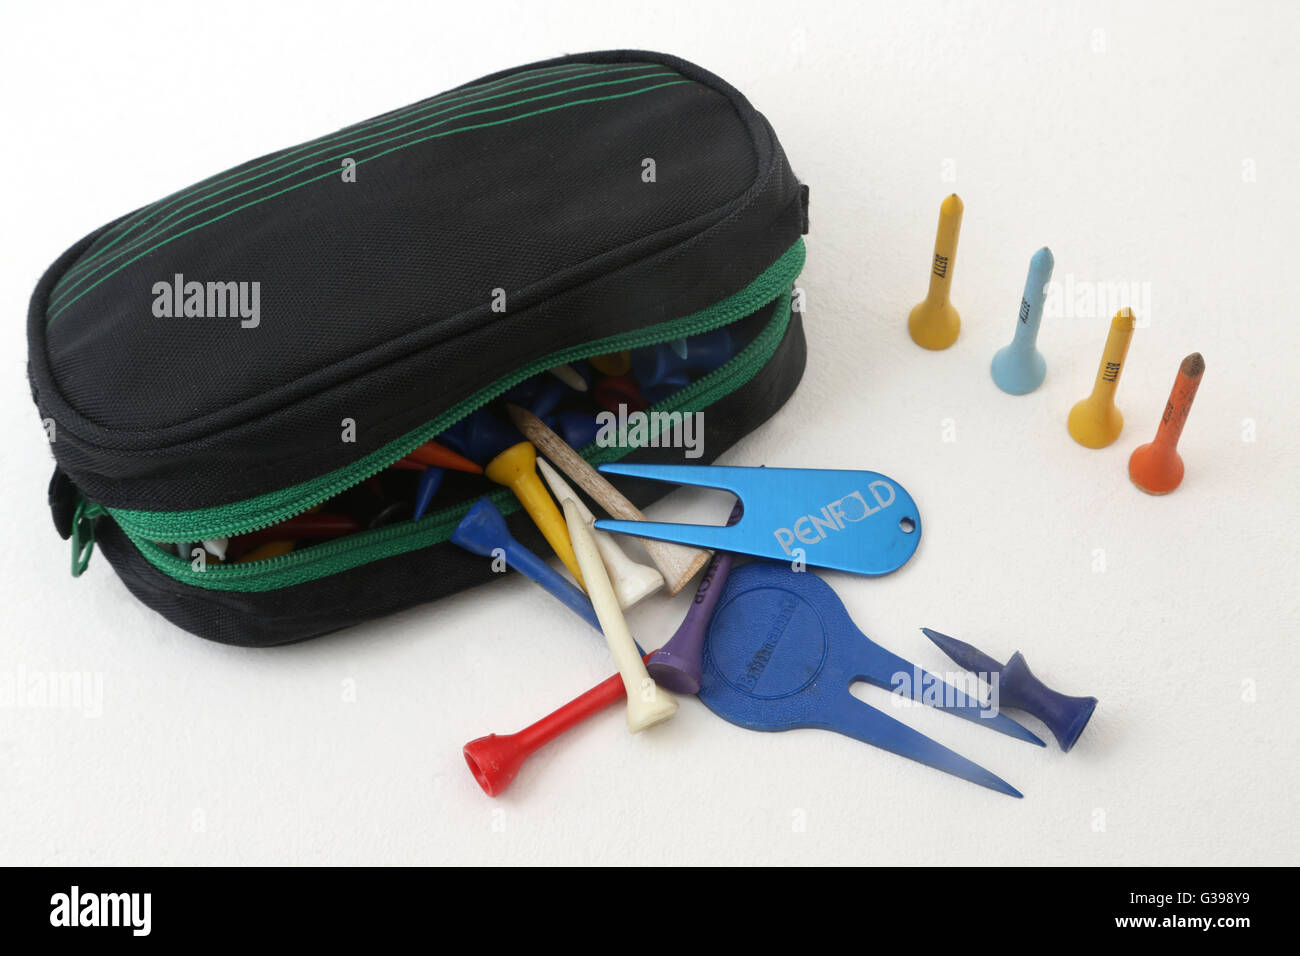 Bag Full Of Golf Tees - Stock Image